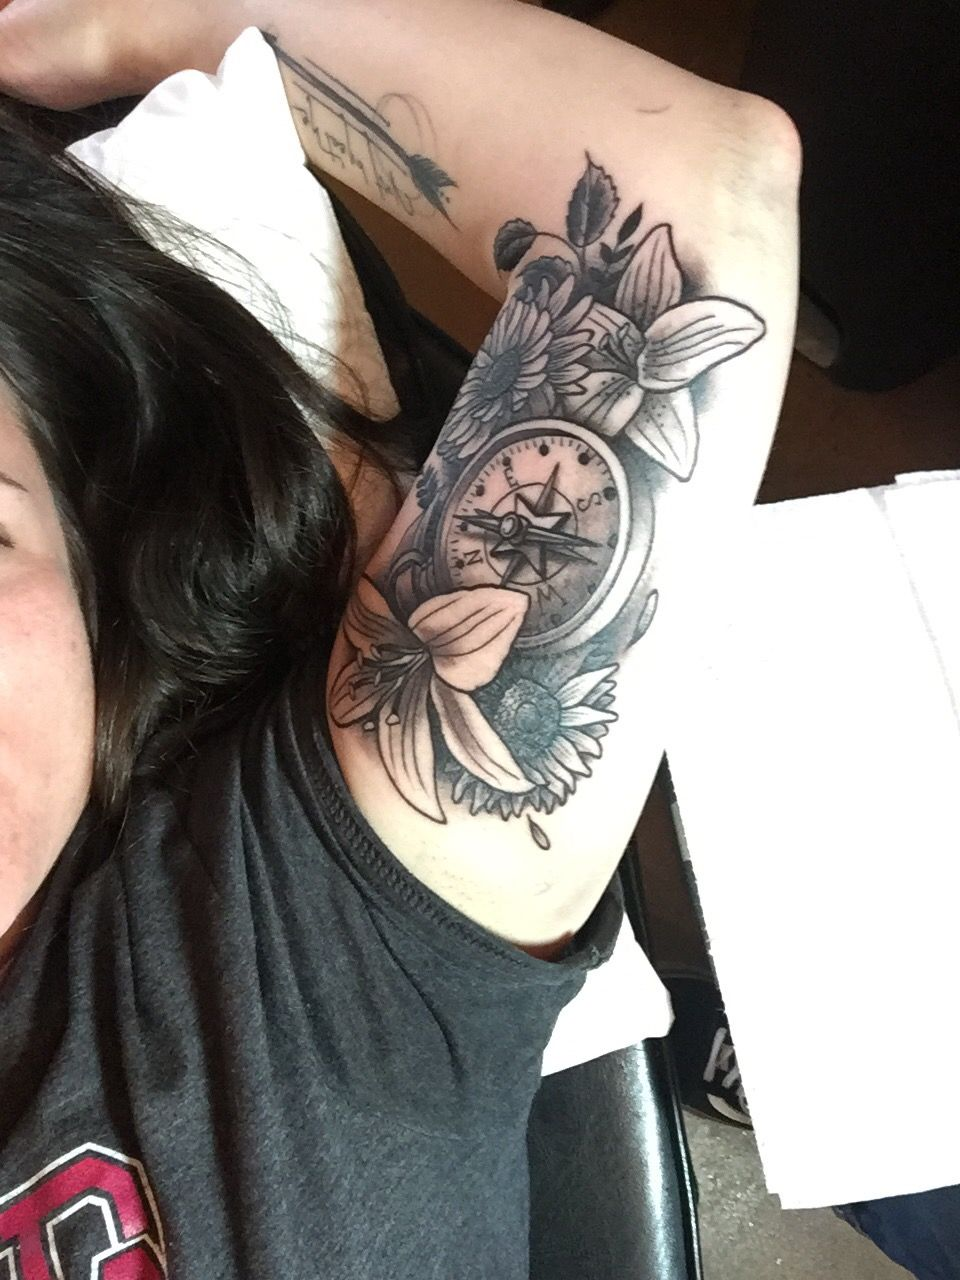 Inner Upper Arm Tattoo: Girls With Tattoos. Inner Arm Piece. Compass With Lilies